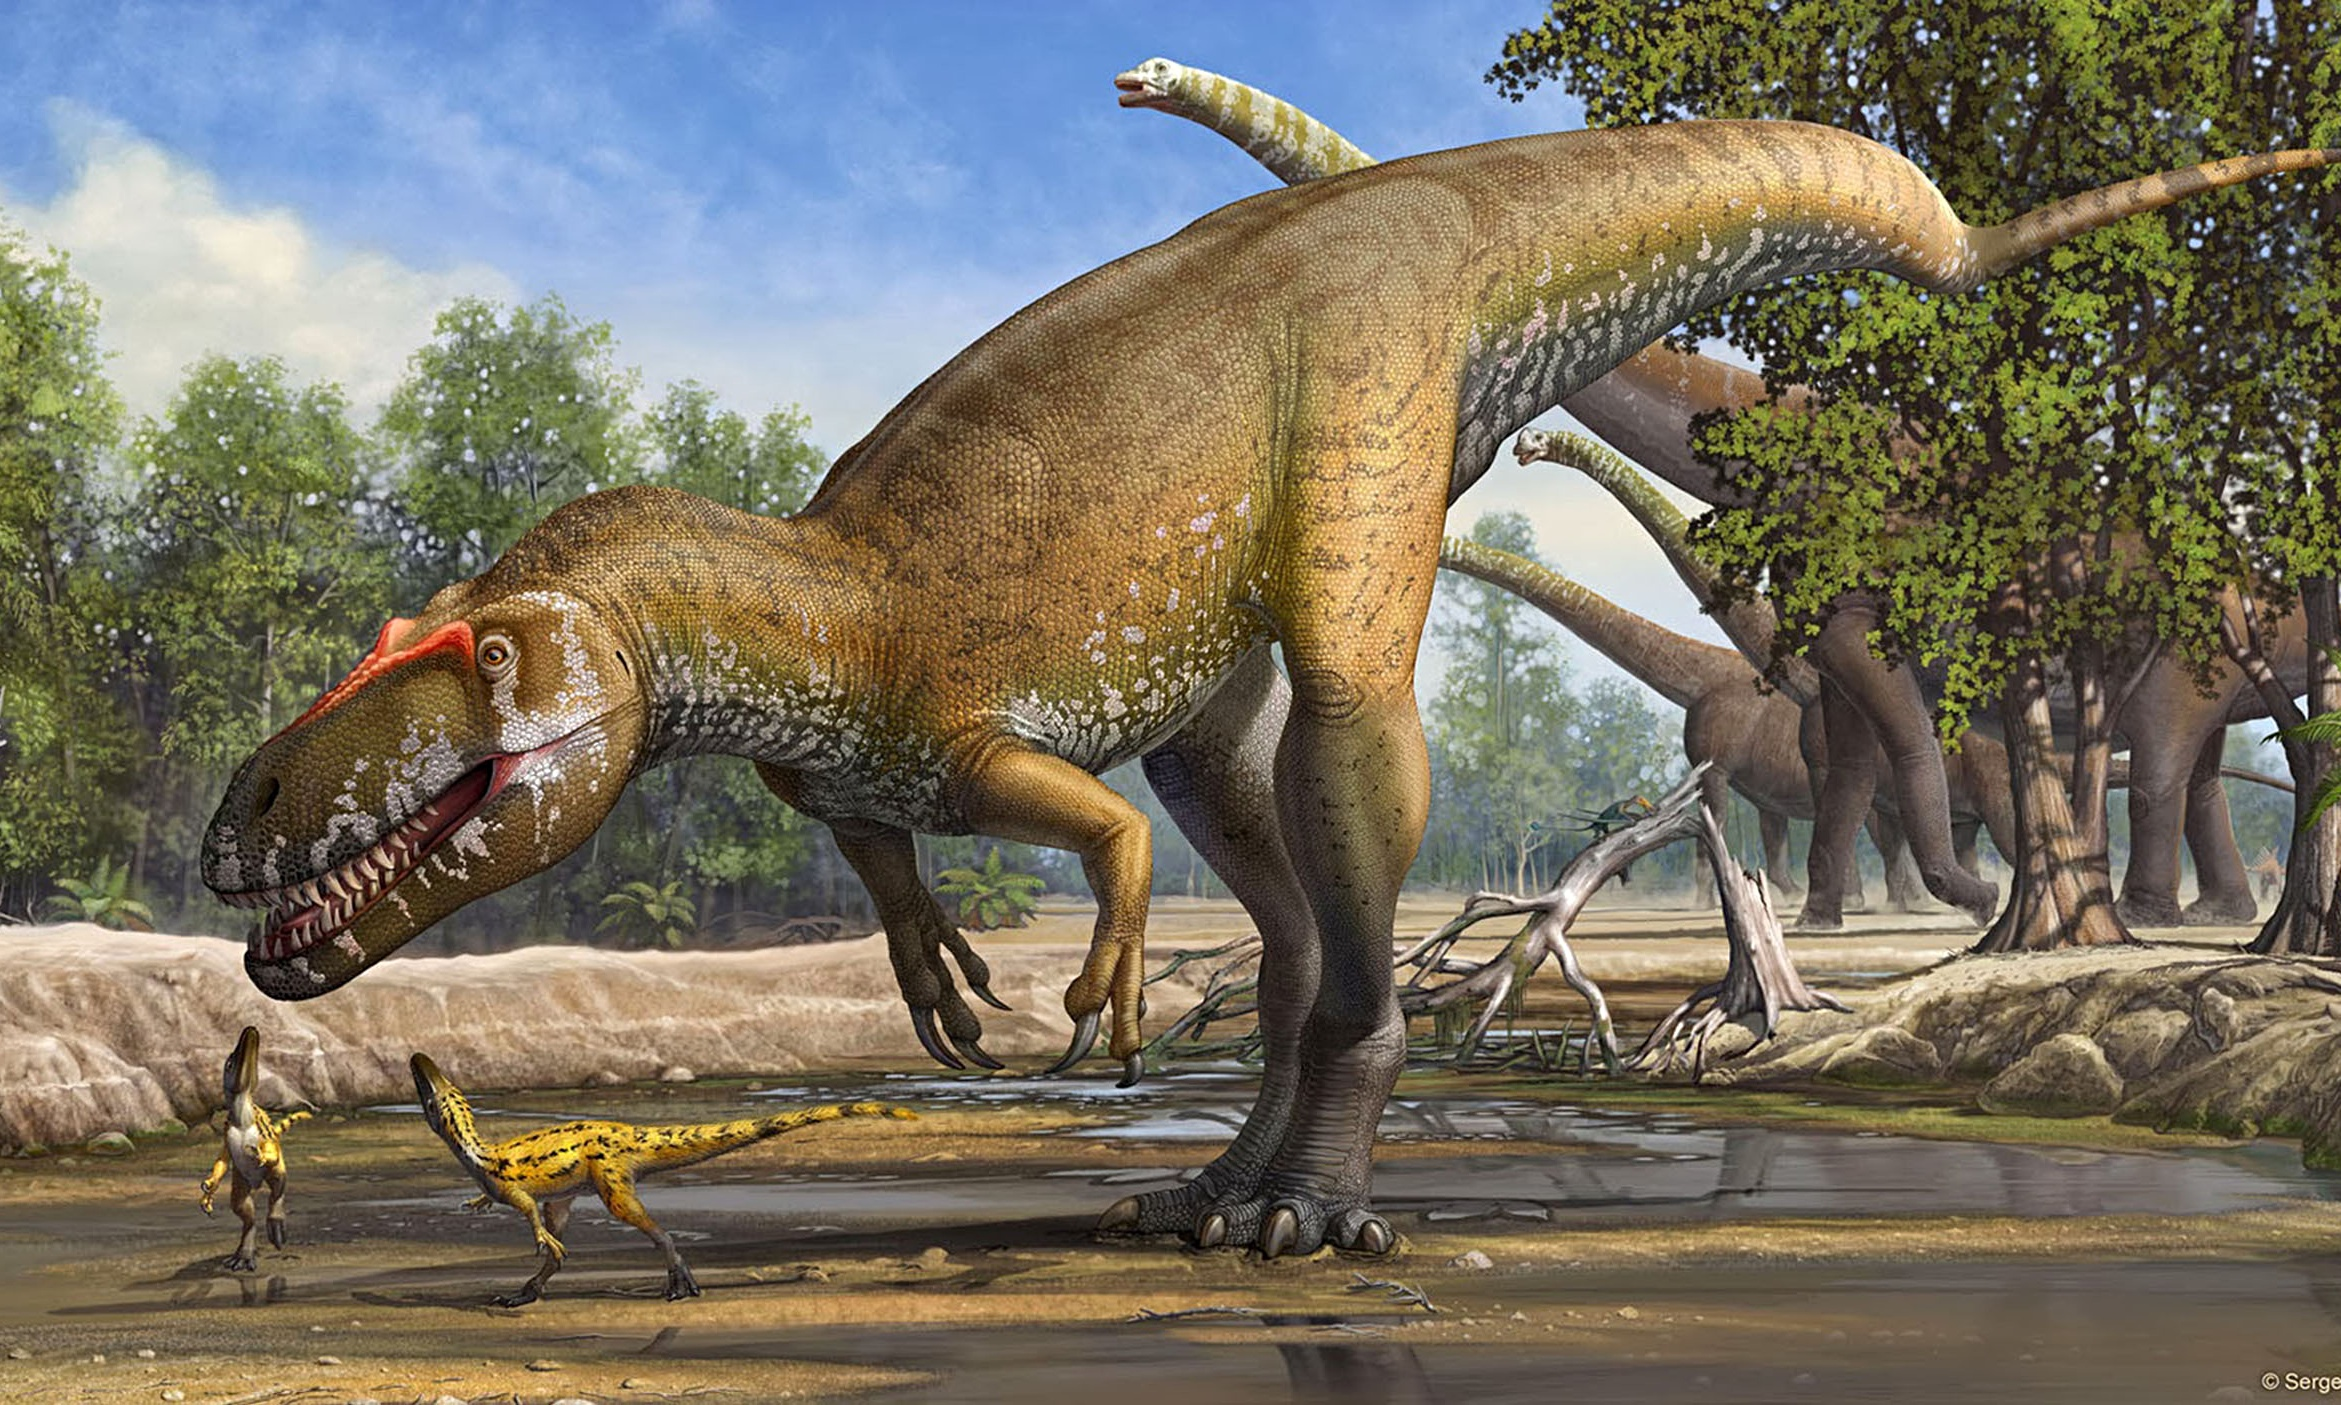 http://static.guim.co.uk/sys-images/Guardian/Pix/pictures/2014/3/5/1394062959544/New-dinosaur-species-disc-012.jpg